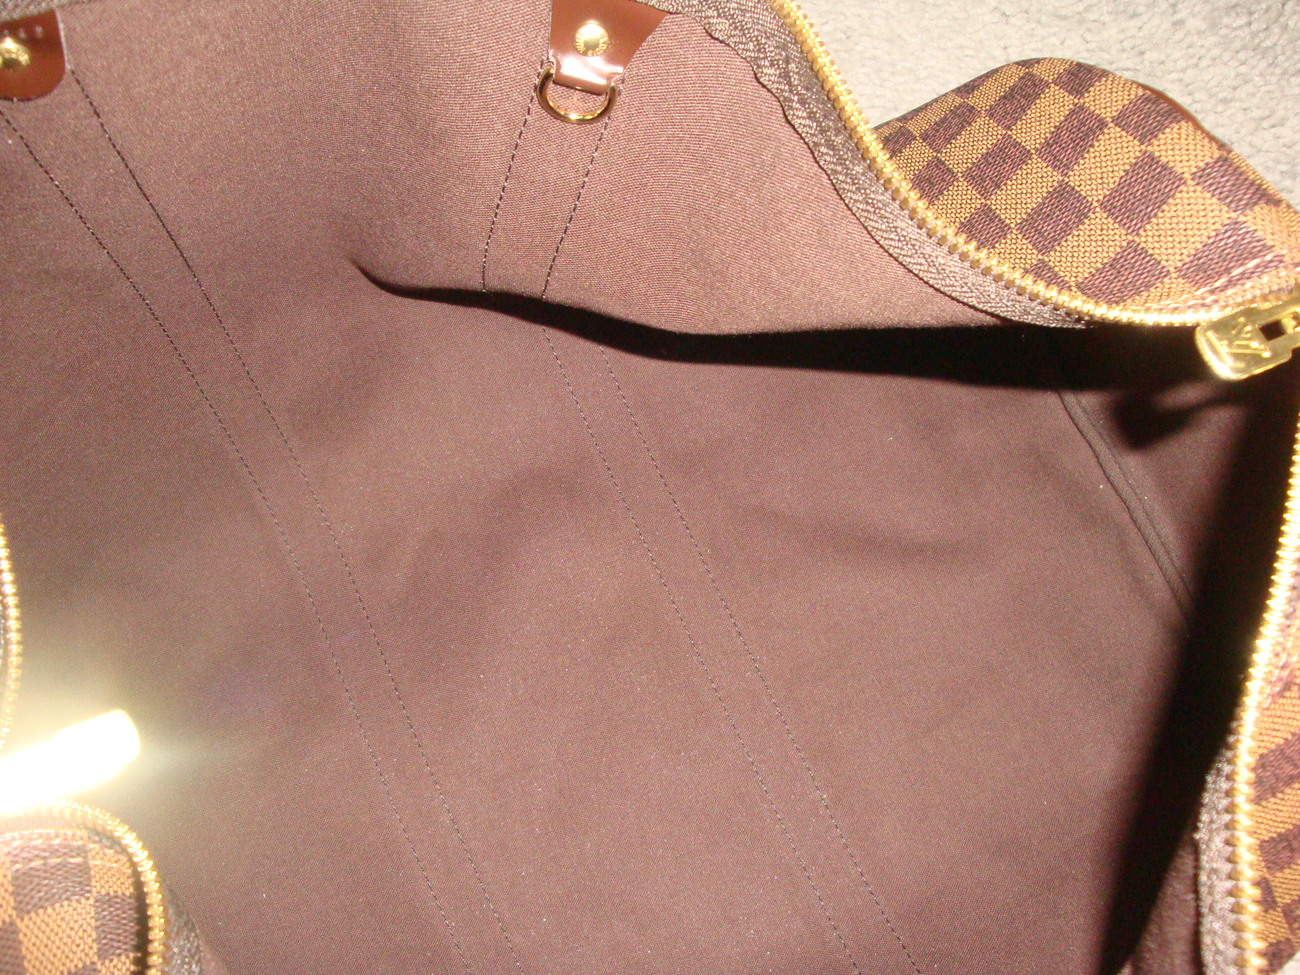 Authentic Louis Vuitton Damier Keepall 50 Luggage Bag